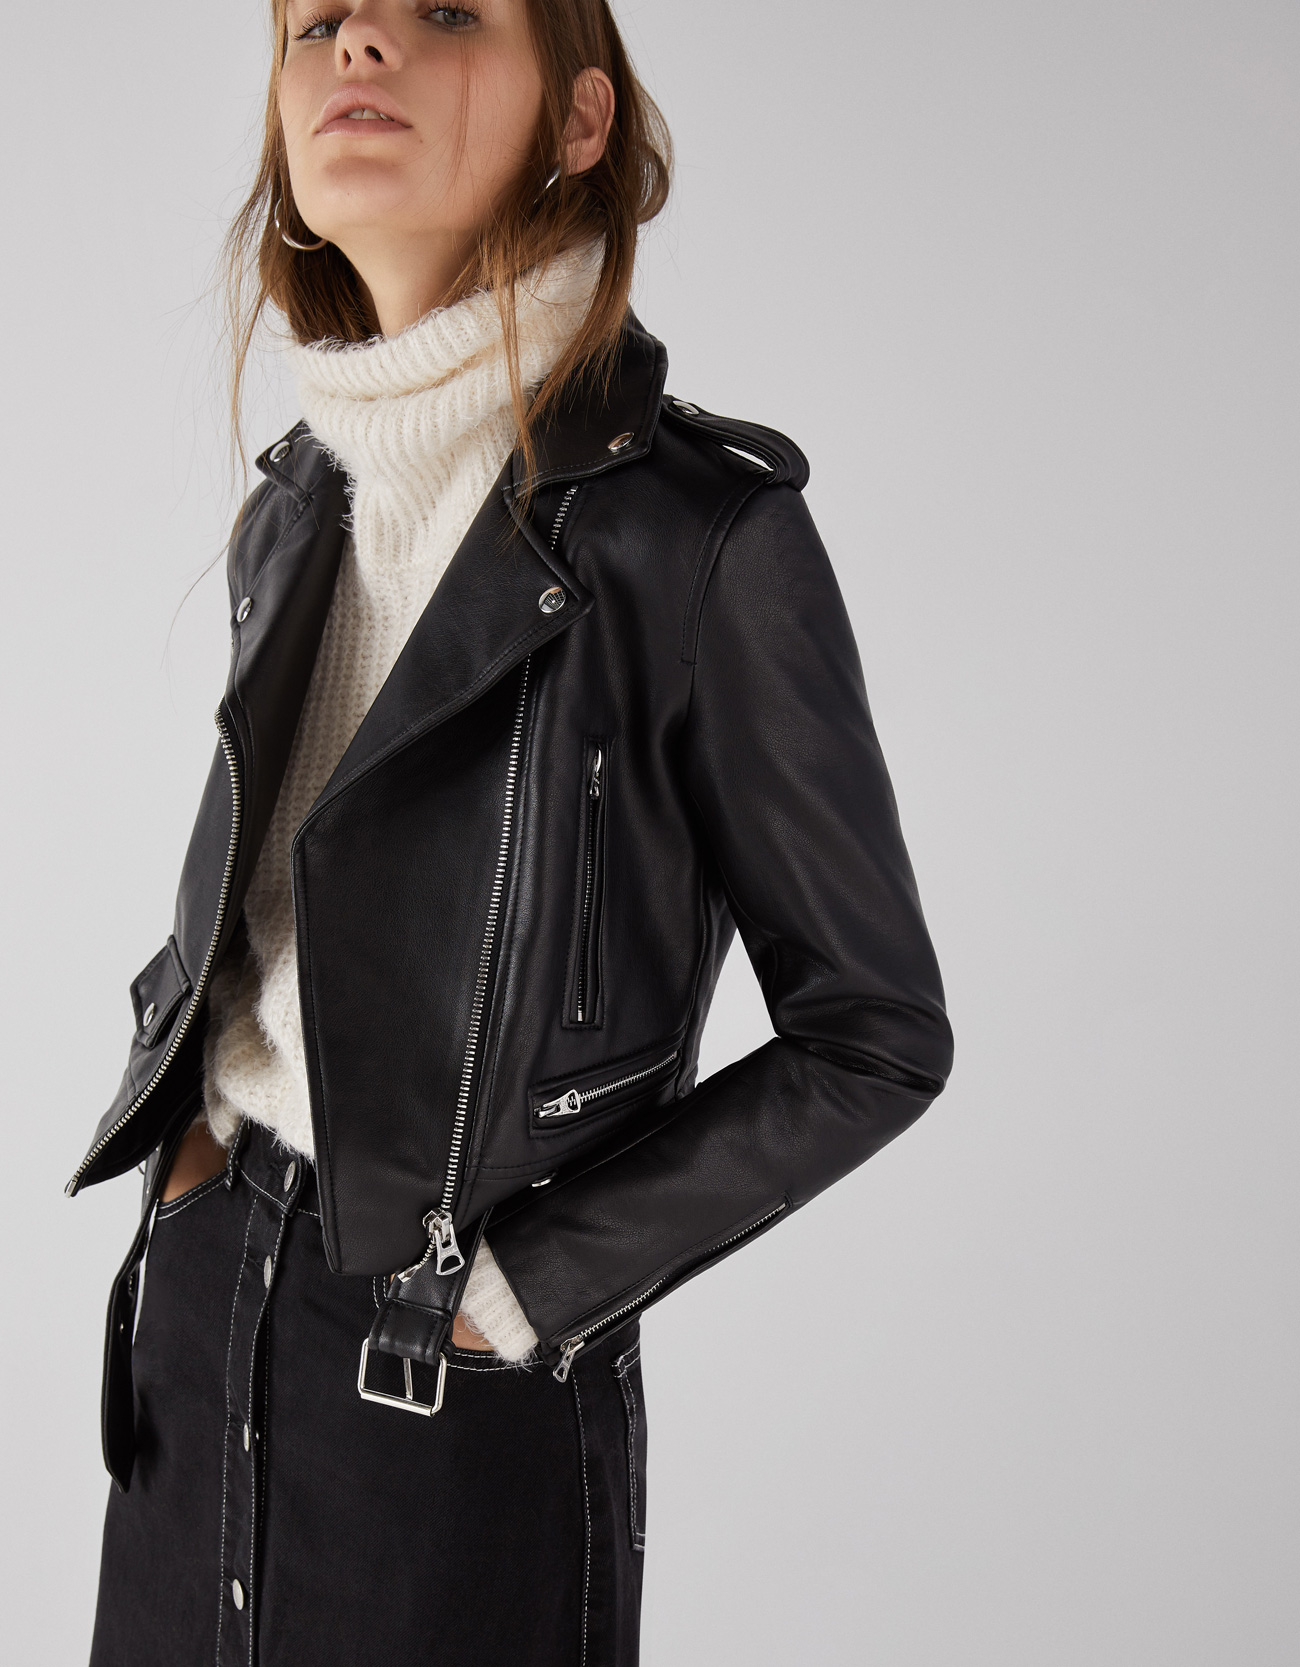 Leather Jackets For Women By Budget